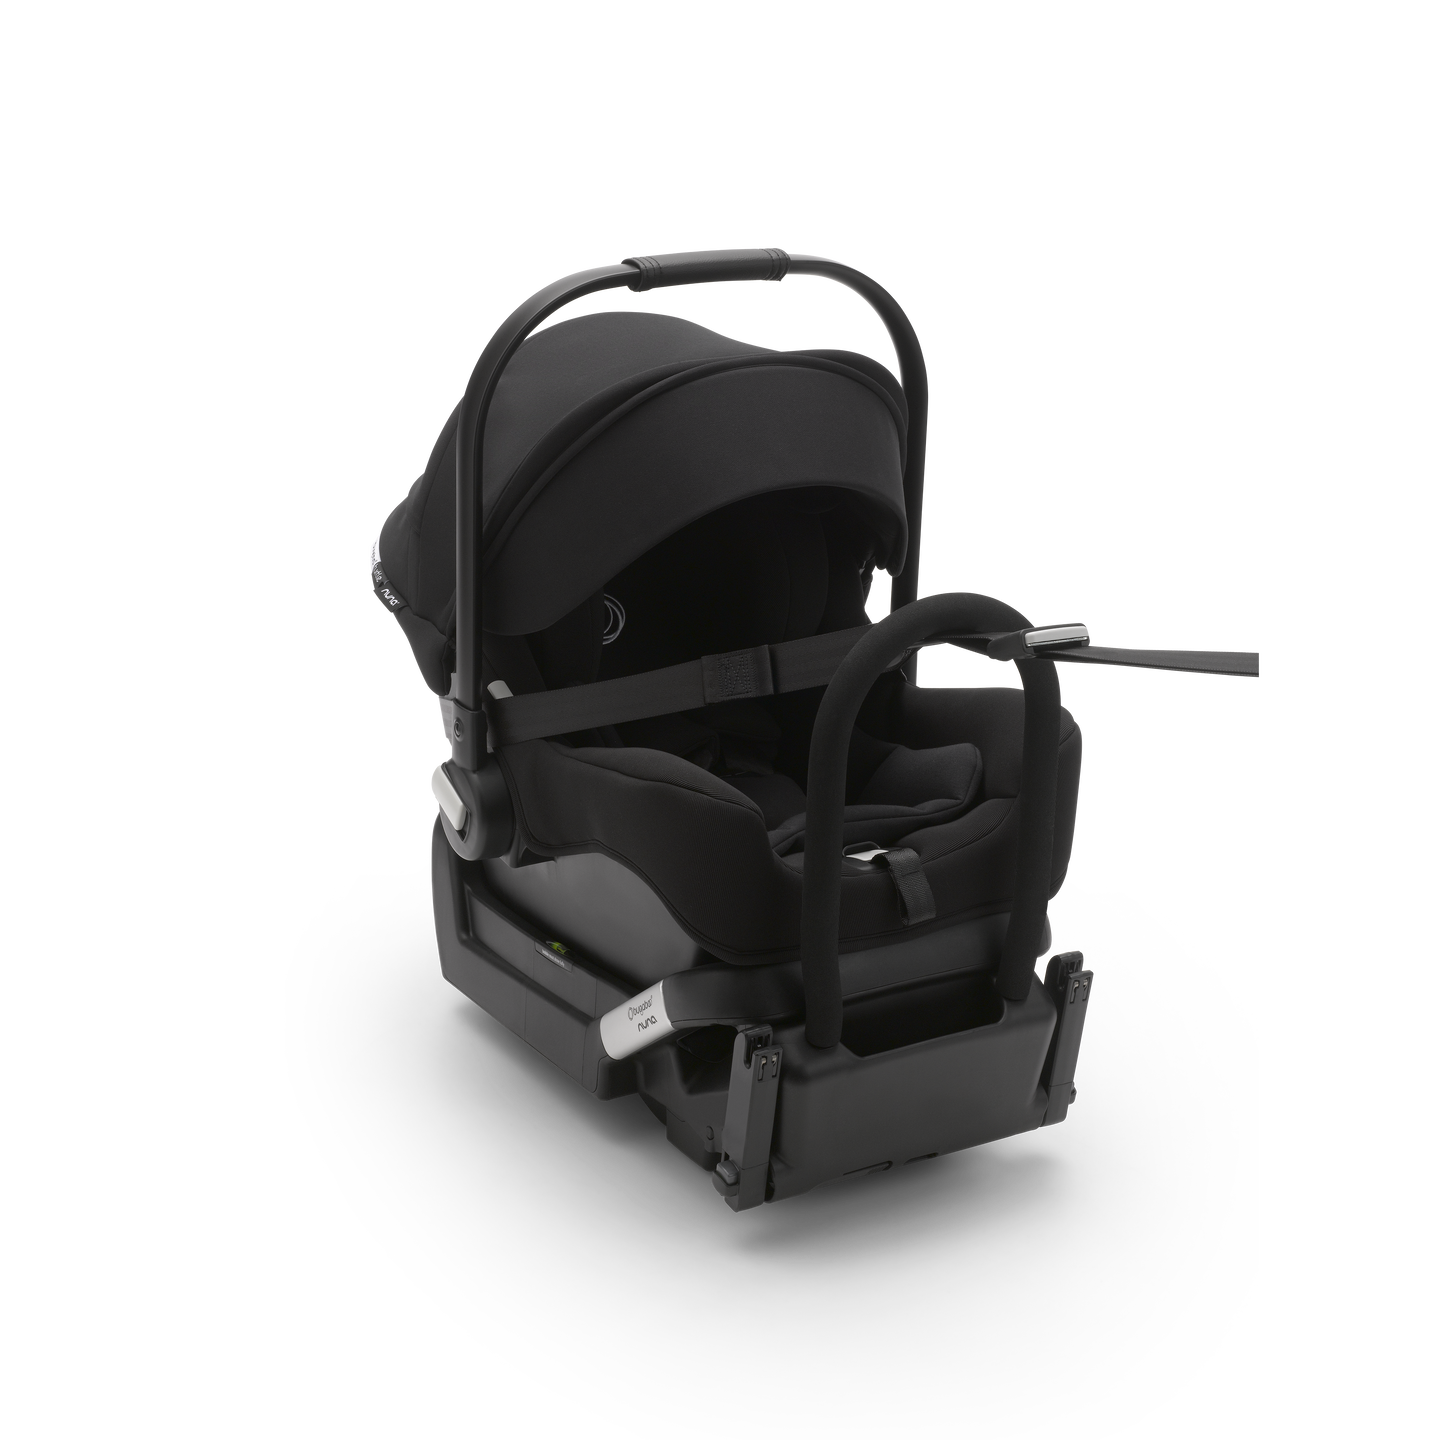 Bugaboo Turtle by Nuna baby capsule with a base